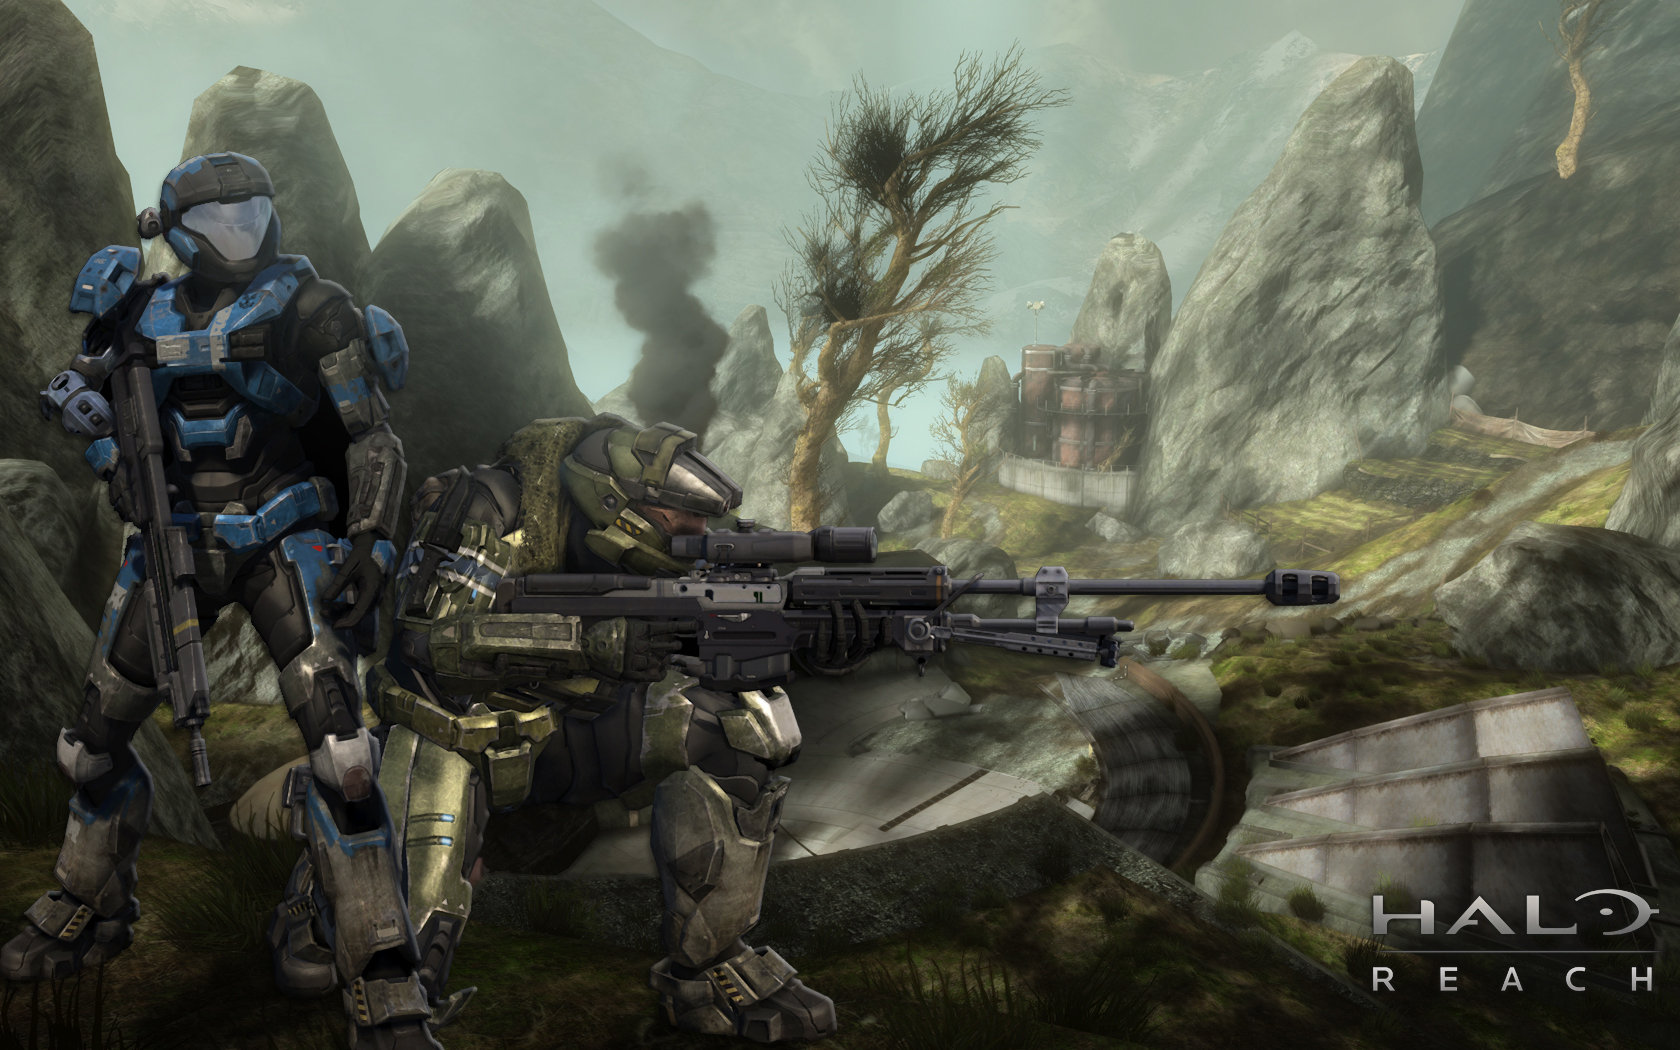 halo reach logo wallpaper images